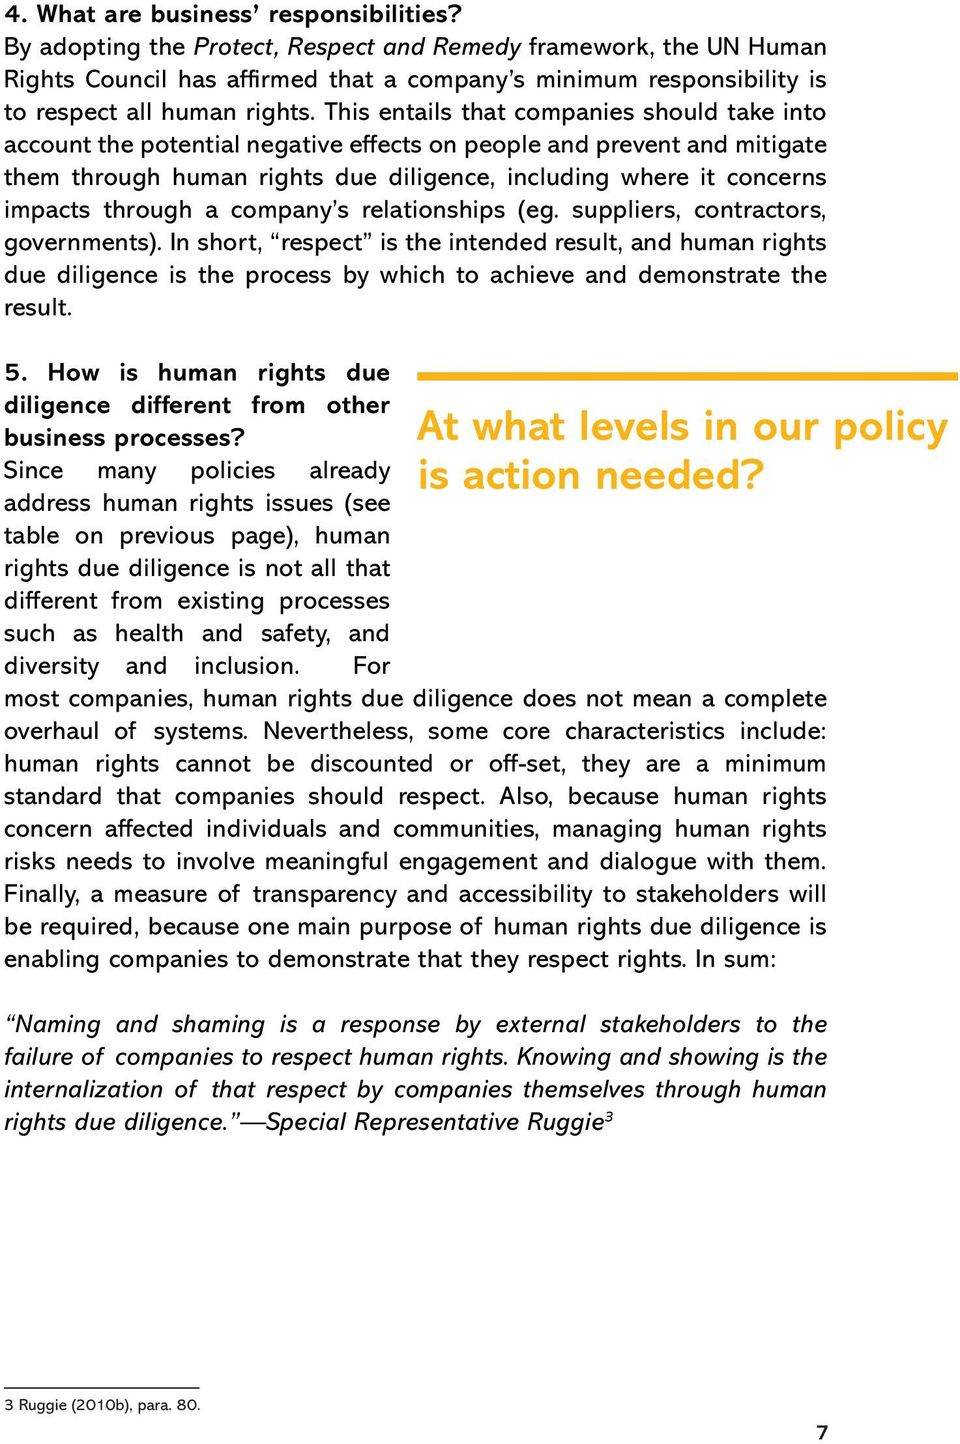 This entails that companies should take into account the potential negative effects on people and prevent and mitigate them through human rights due diligence, including where it concerns impacts